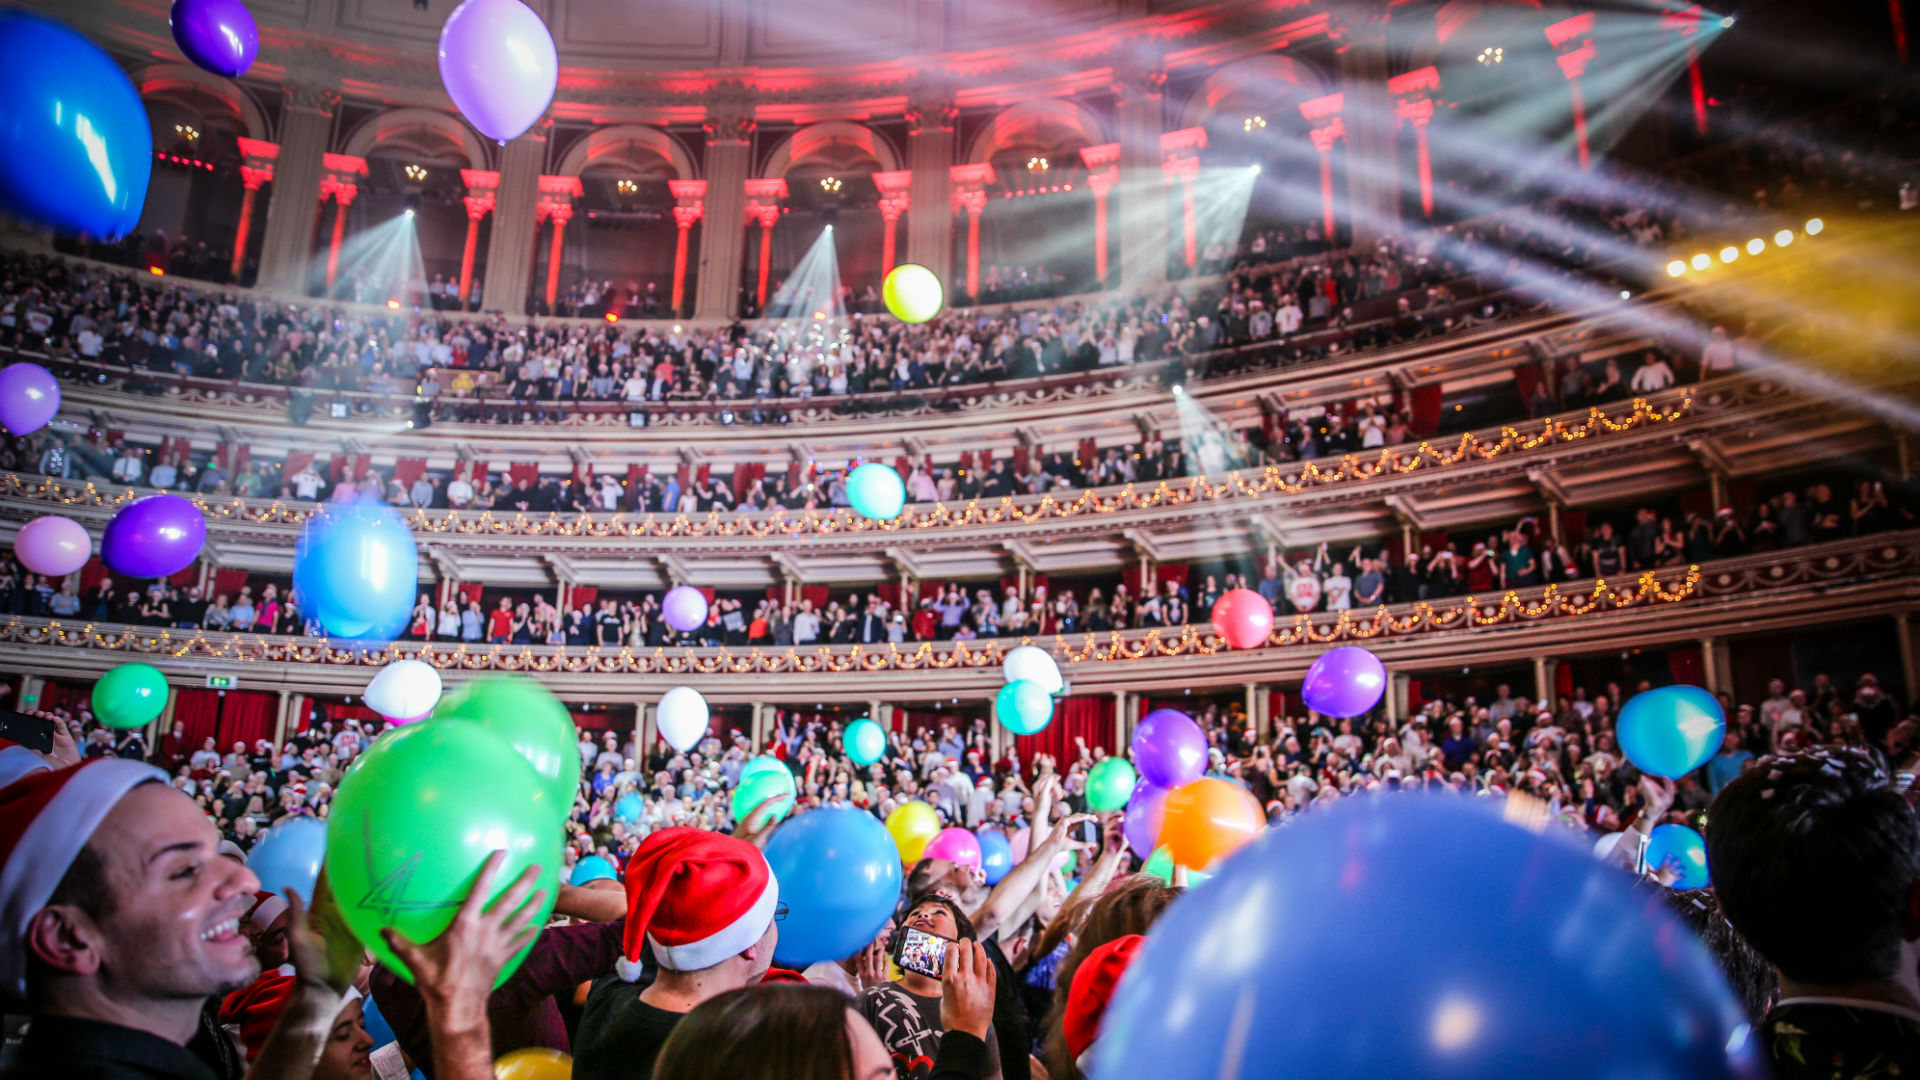 Christmas Festival at Royal Albert Hall. Image courtesy of Royal Albert Hall